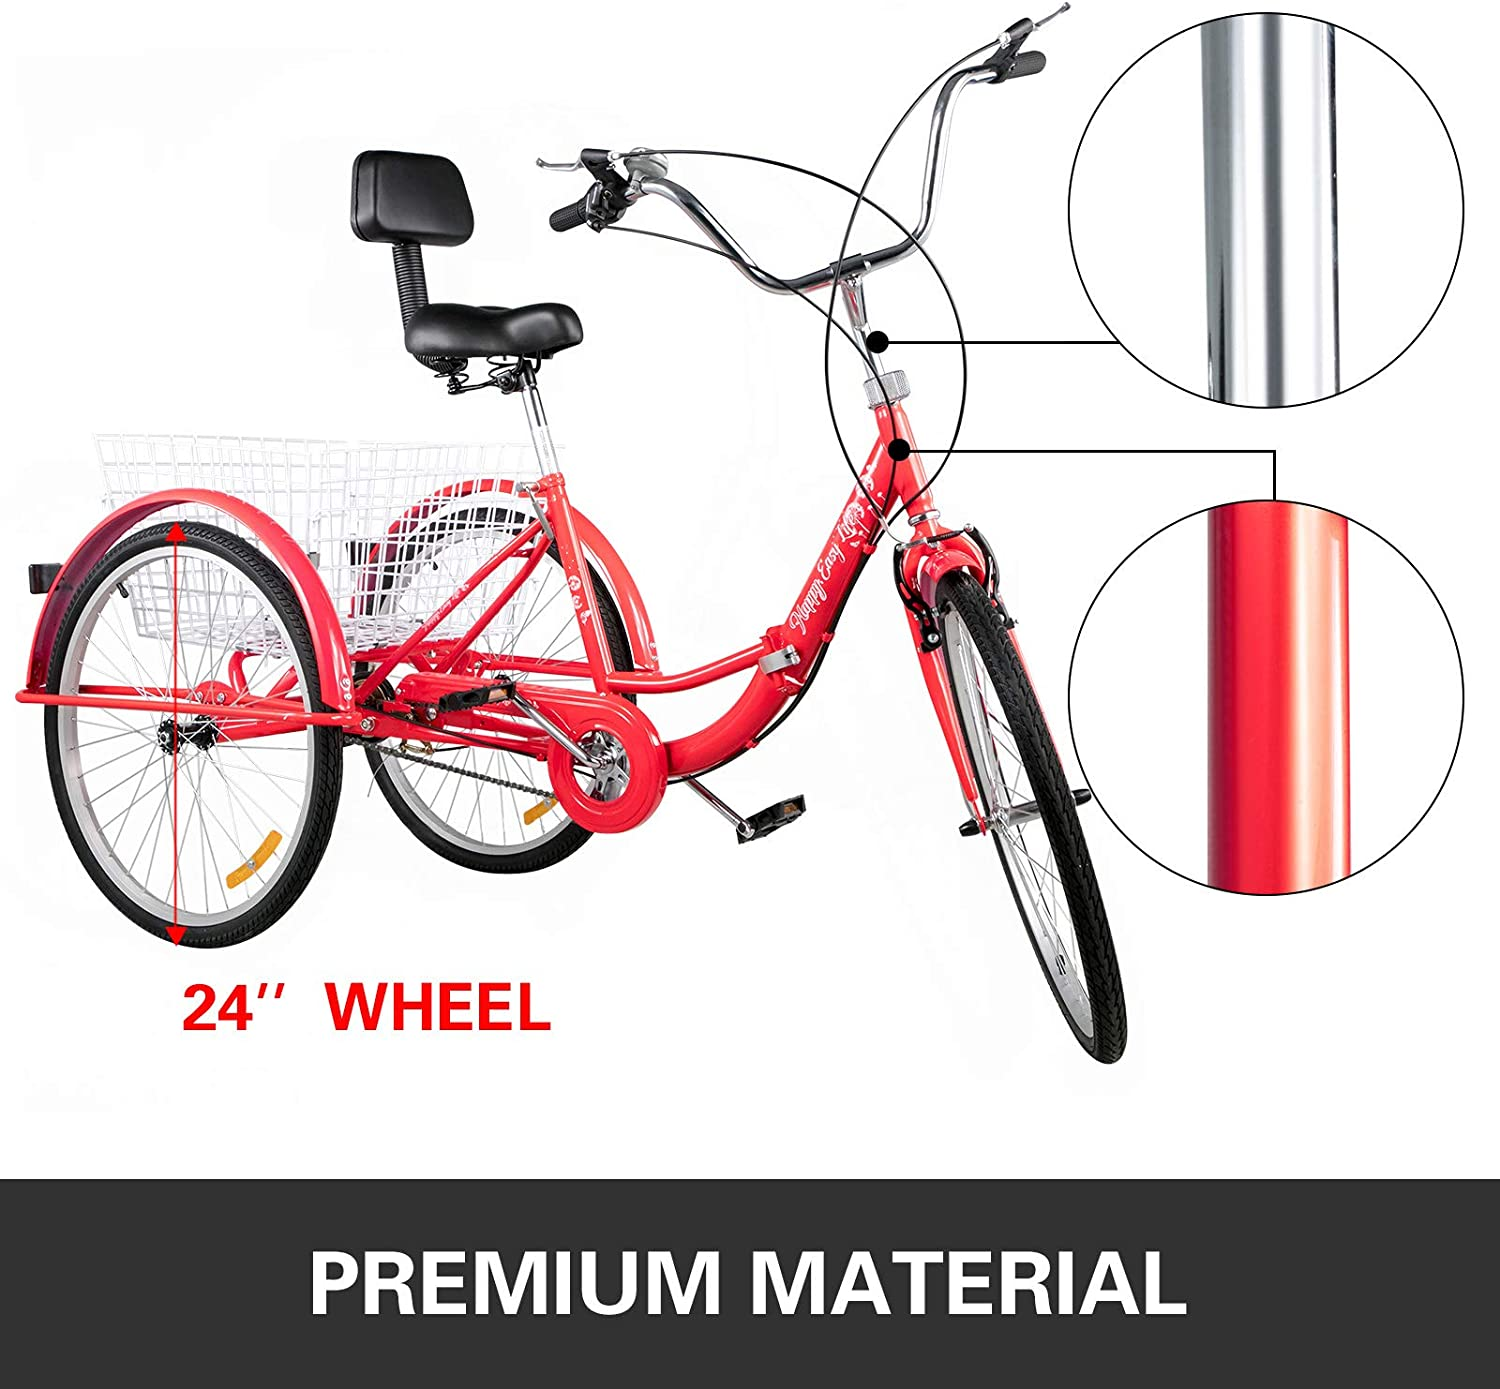 Bkisy Tricycle Adult 24/'/' Wheels Adult Tricycle 1-Speed 3 Wheel Bikes White for Adults Three Wheel Bike for Adults Adult Trike Adult Folding Tricycle Foldable 3 Wheel Bike for Adults